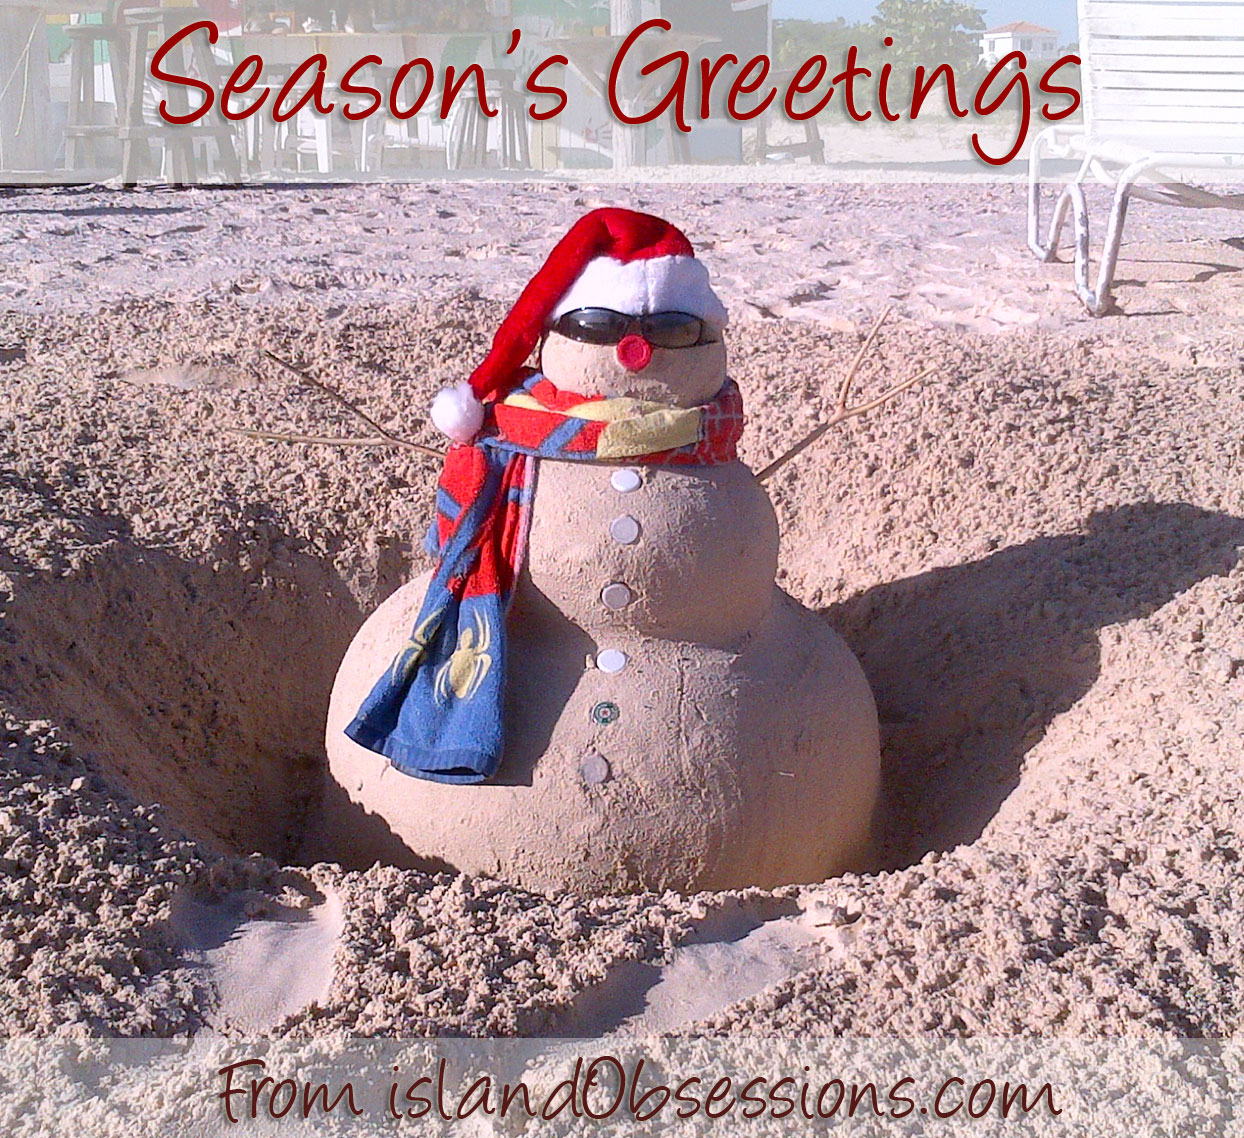 Seasons Greetings from islandObsessions.com!